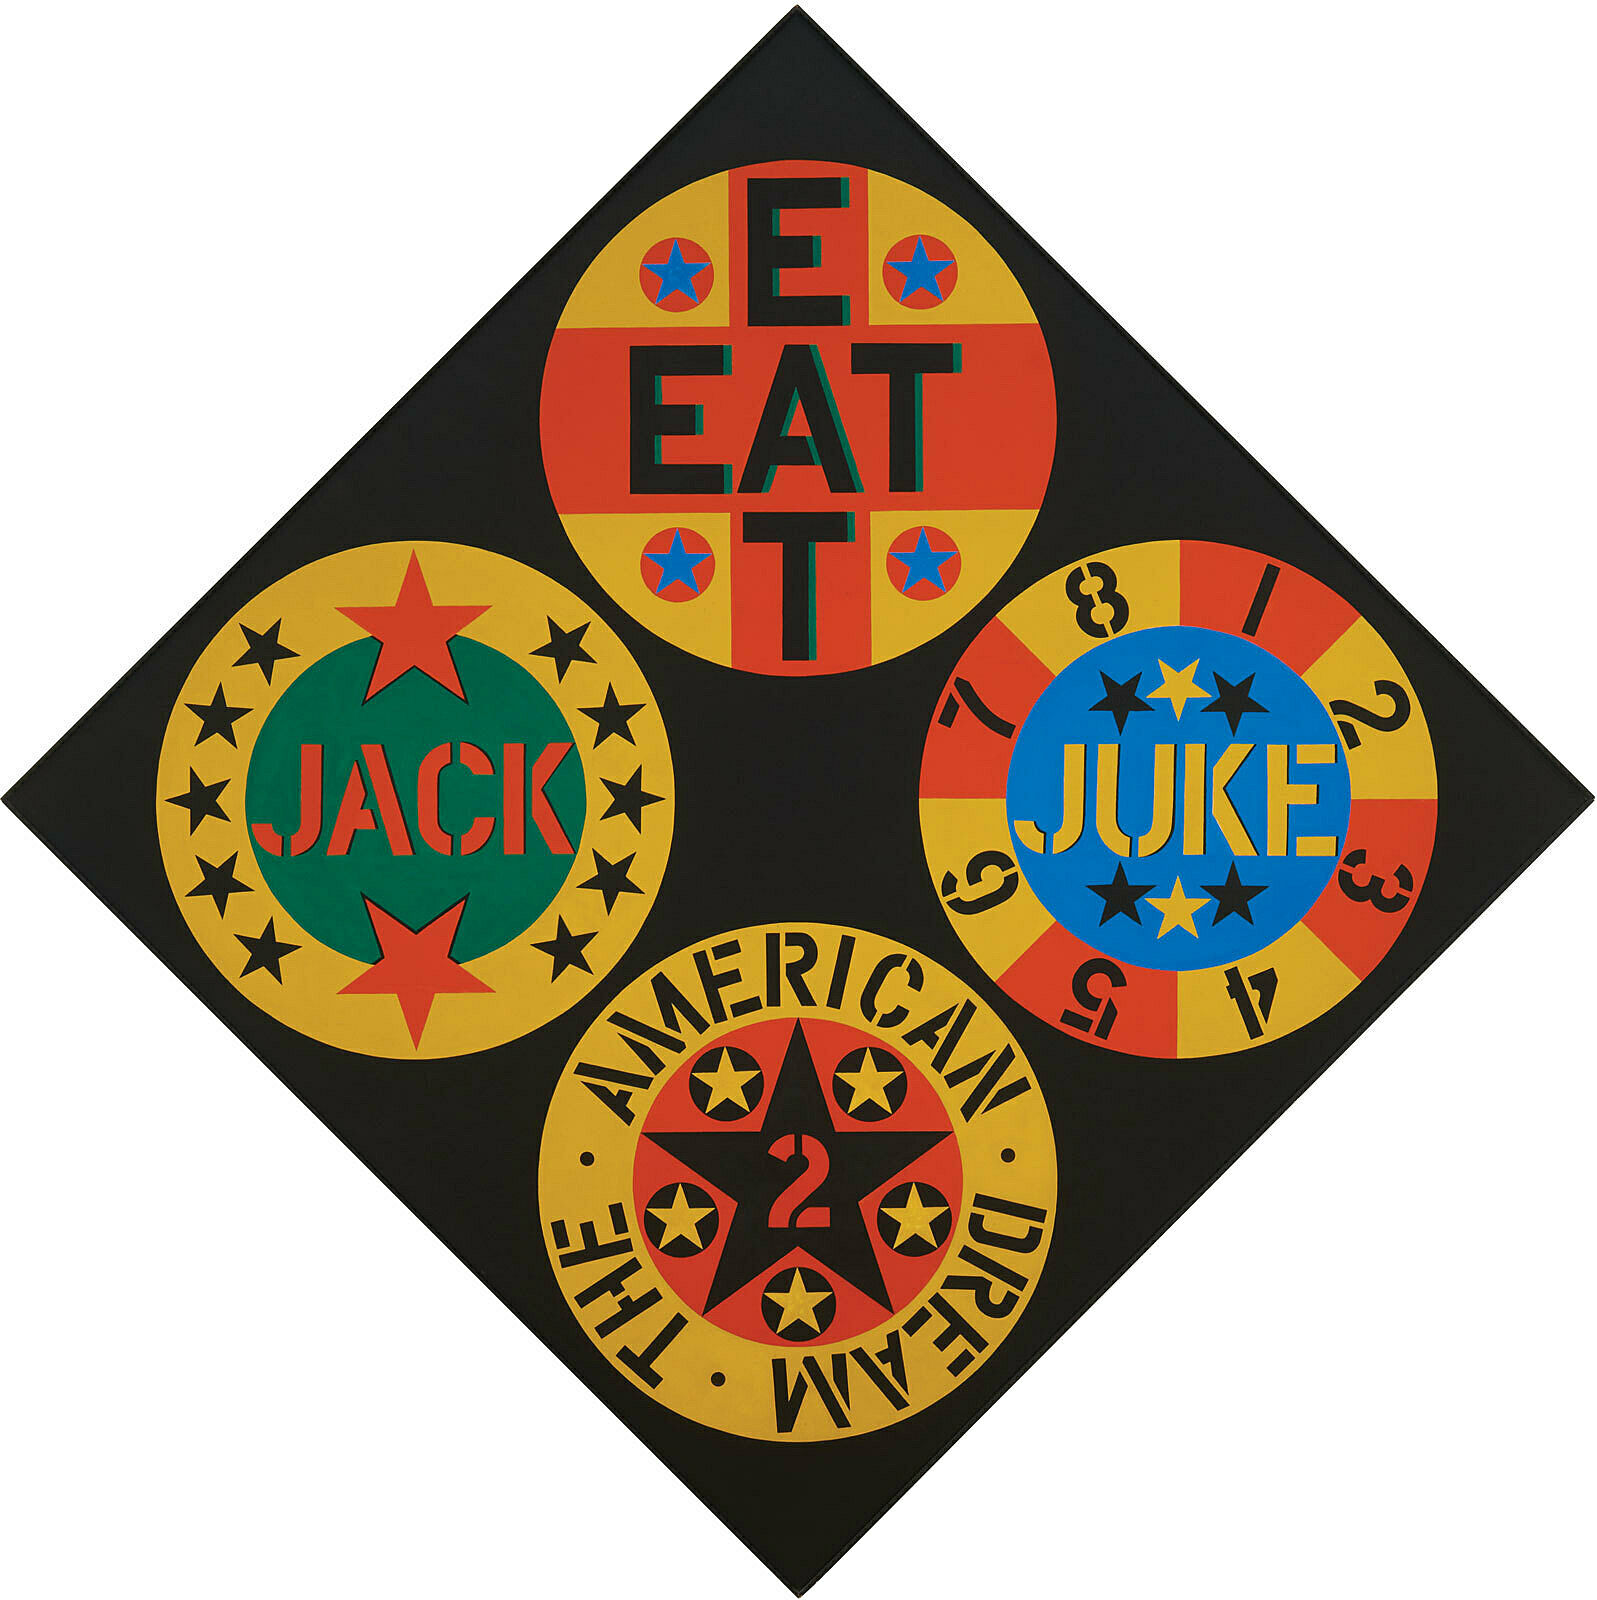 Artwork by Robert Indiana.